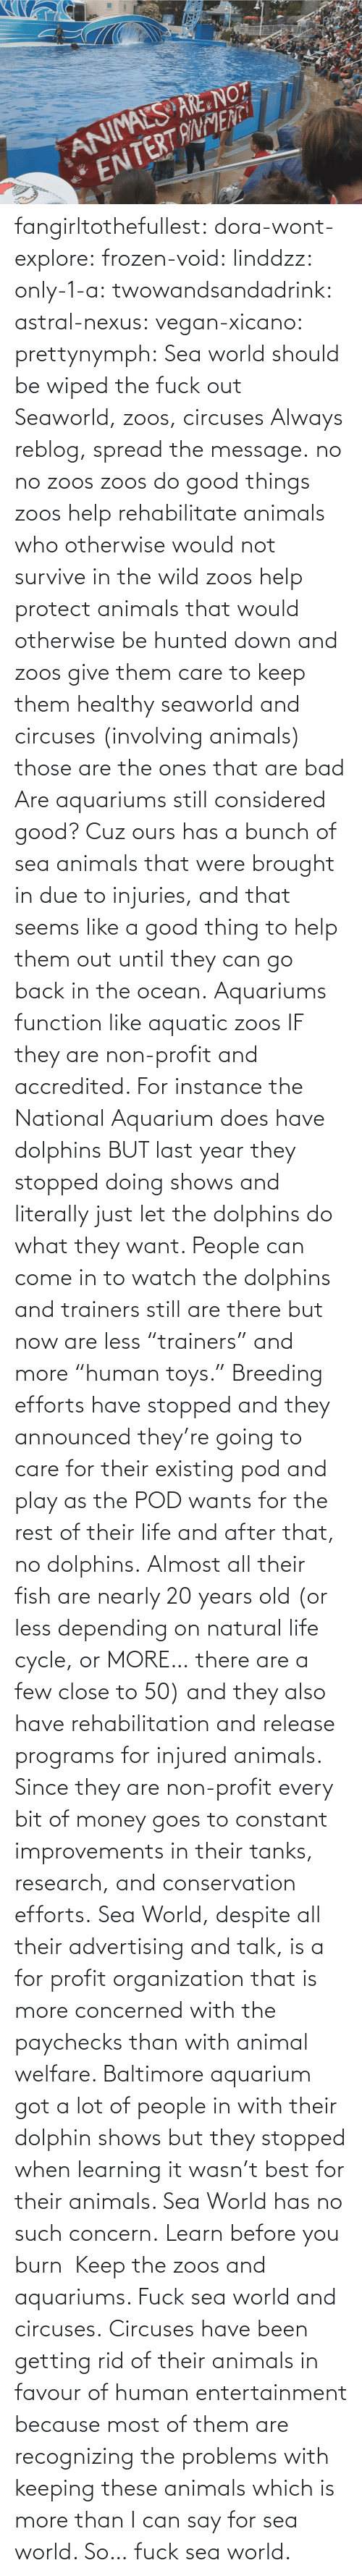 "Baltimore: fangirltothefullest:  dora-wont-explore:  frozen-void:  linddzz:  only-1-a:  twowandsandadrink:  astral-nexus:  vegan-xicano:  prettynymph:  Sea world should be wiped the fuck out  Seaworld, zoos, circuses  Always reblog, spread the message.  no no zoos zoos do good things zoos help rehabilitate animals who otherwise would not survive in the wild zoos help protect animals that would otherwise be hunted down and zoos give them care to keep them healthy seaworld and circuses (involving animals) those are the ones that are bad  Are aquariums still considered good? Cuz ours has a bunch of sea animals that were brought in due to injuries, and that seems like a good thing to help them out until they can go back in the ocean.  Aquariums function like aquatic zoos IF they are non-profit and accredited. For instance the National Aquarium does have dolphins BUT last year they stopped doing shows and literally just let the dolphins do what they want. People can come in to watch the dolphins and trainers still are there but now are less ""trainers"" and more ""human toys."" Breeding efforts have stopped and they announced they're going to care for their existing pod and play as the POD wants for the rest of their life and after that, no dolphins. Almost all their fish are nearly 20 years old (or less depending on natural life cycle, or MORE… there are a few close to 50) and they also have rehabilitation and release programs for injured animals. Since they are non-profit every bit of money goes to constant improvements in their tanks, research, and conservation efforts. Sea World, despite all their advertising and talk, is a for profit organization that is more concerned with the paychecks than with animal welfare. Baltimore aquarium got a lot of people in with their dolphin shows but they stopped when learning it wasn't best for their animals. Sea World has no such concern.  Learn before you burn   Keep the zoos and aquariums. Fuck sea world and circuses.  Circuses have been getting rid of  their animals in favour of human entertainment because most of them are recognizing the problems with keeping these animals which is more than I can say for sea world. So… fuck sea world."